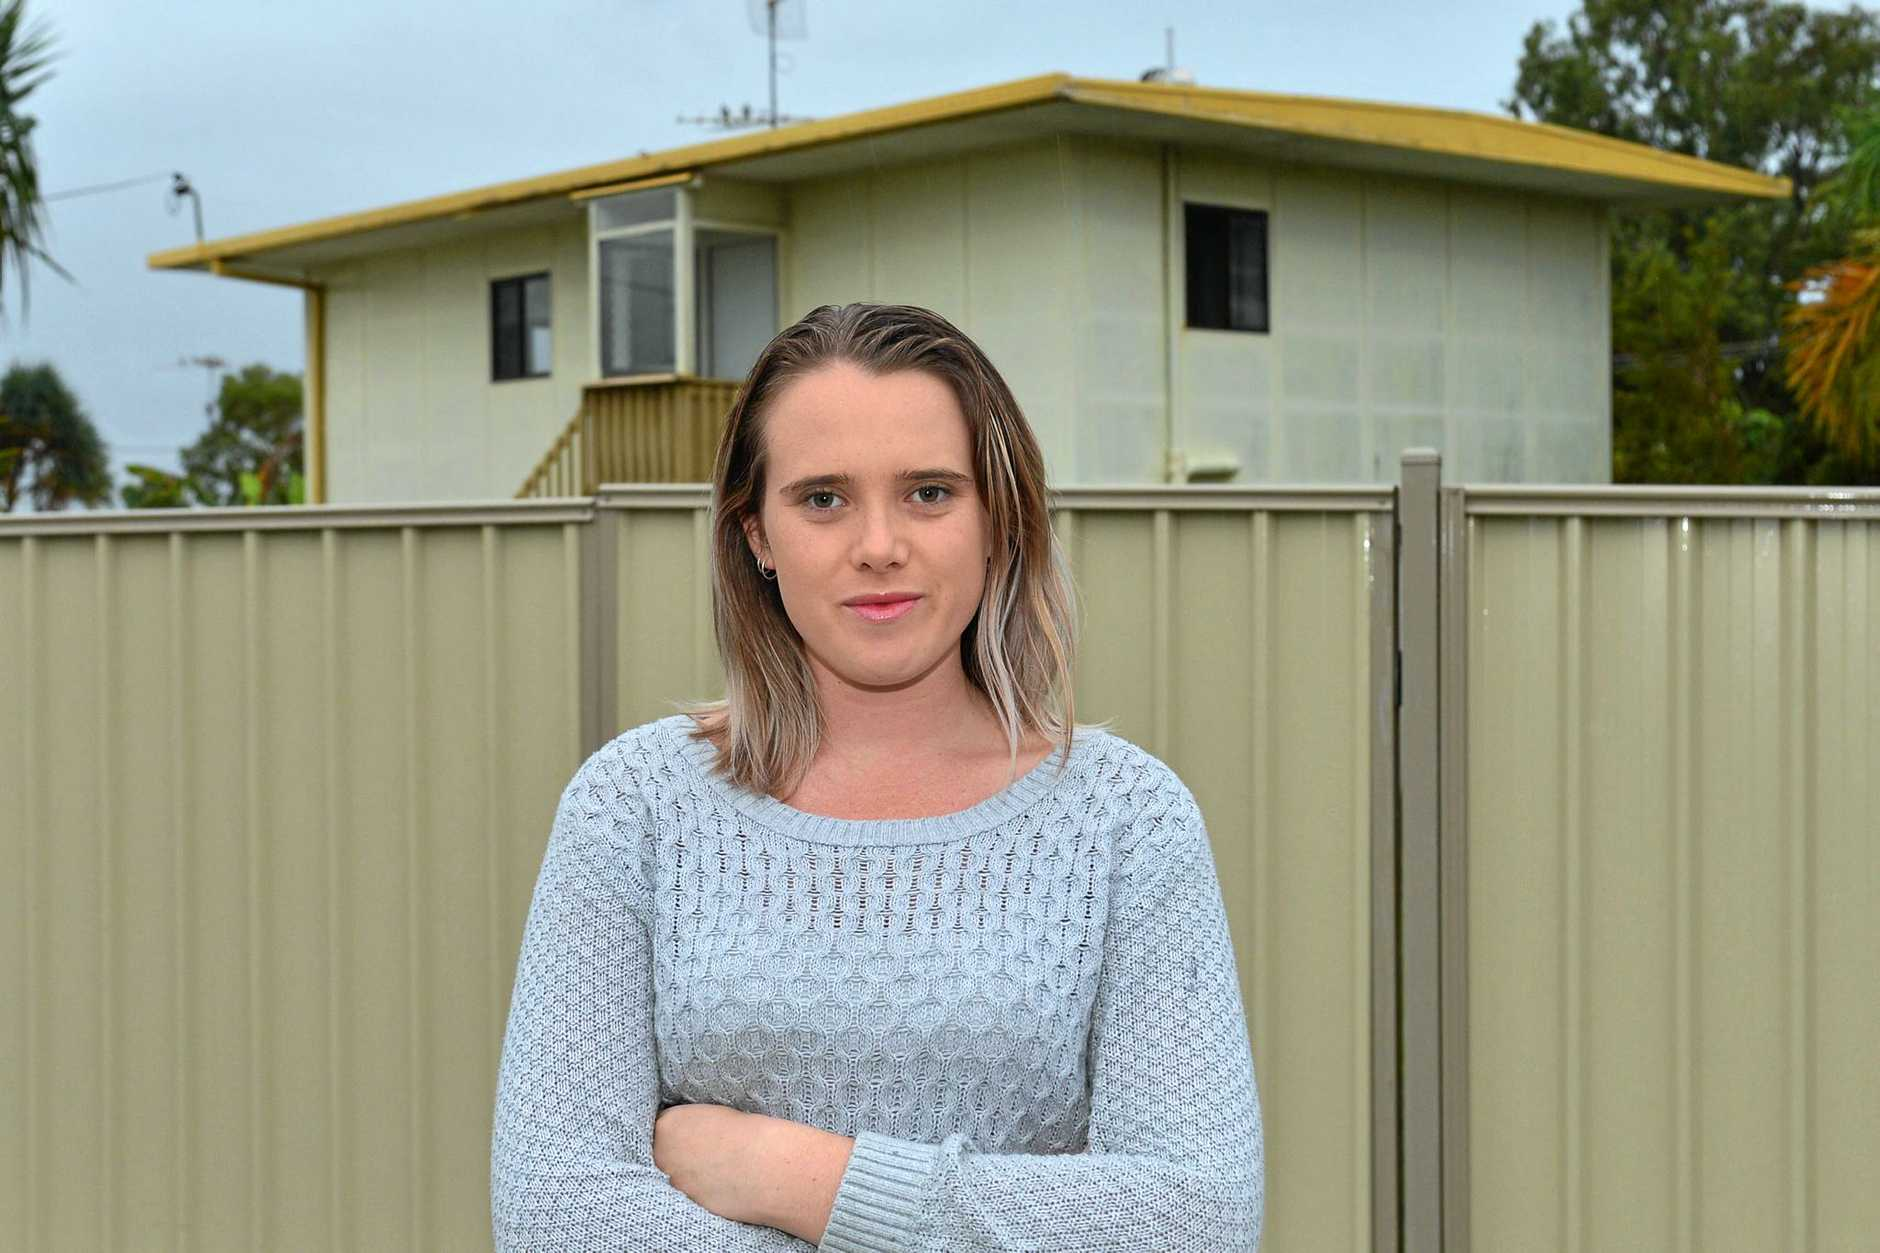 Alyx Wilson had to rent a $385 unit in Currimundi because the market was too competitive for cheaper rental housing. She is now renting a room from friends who own a house in Currimundi, and says its much more affordable.